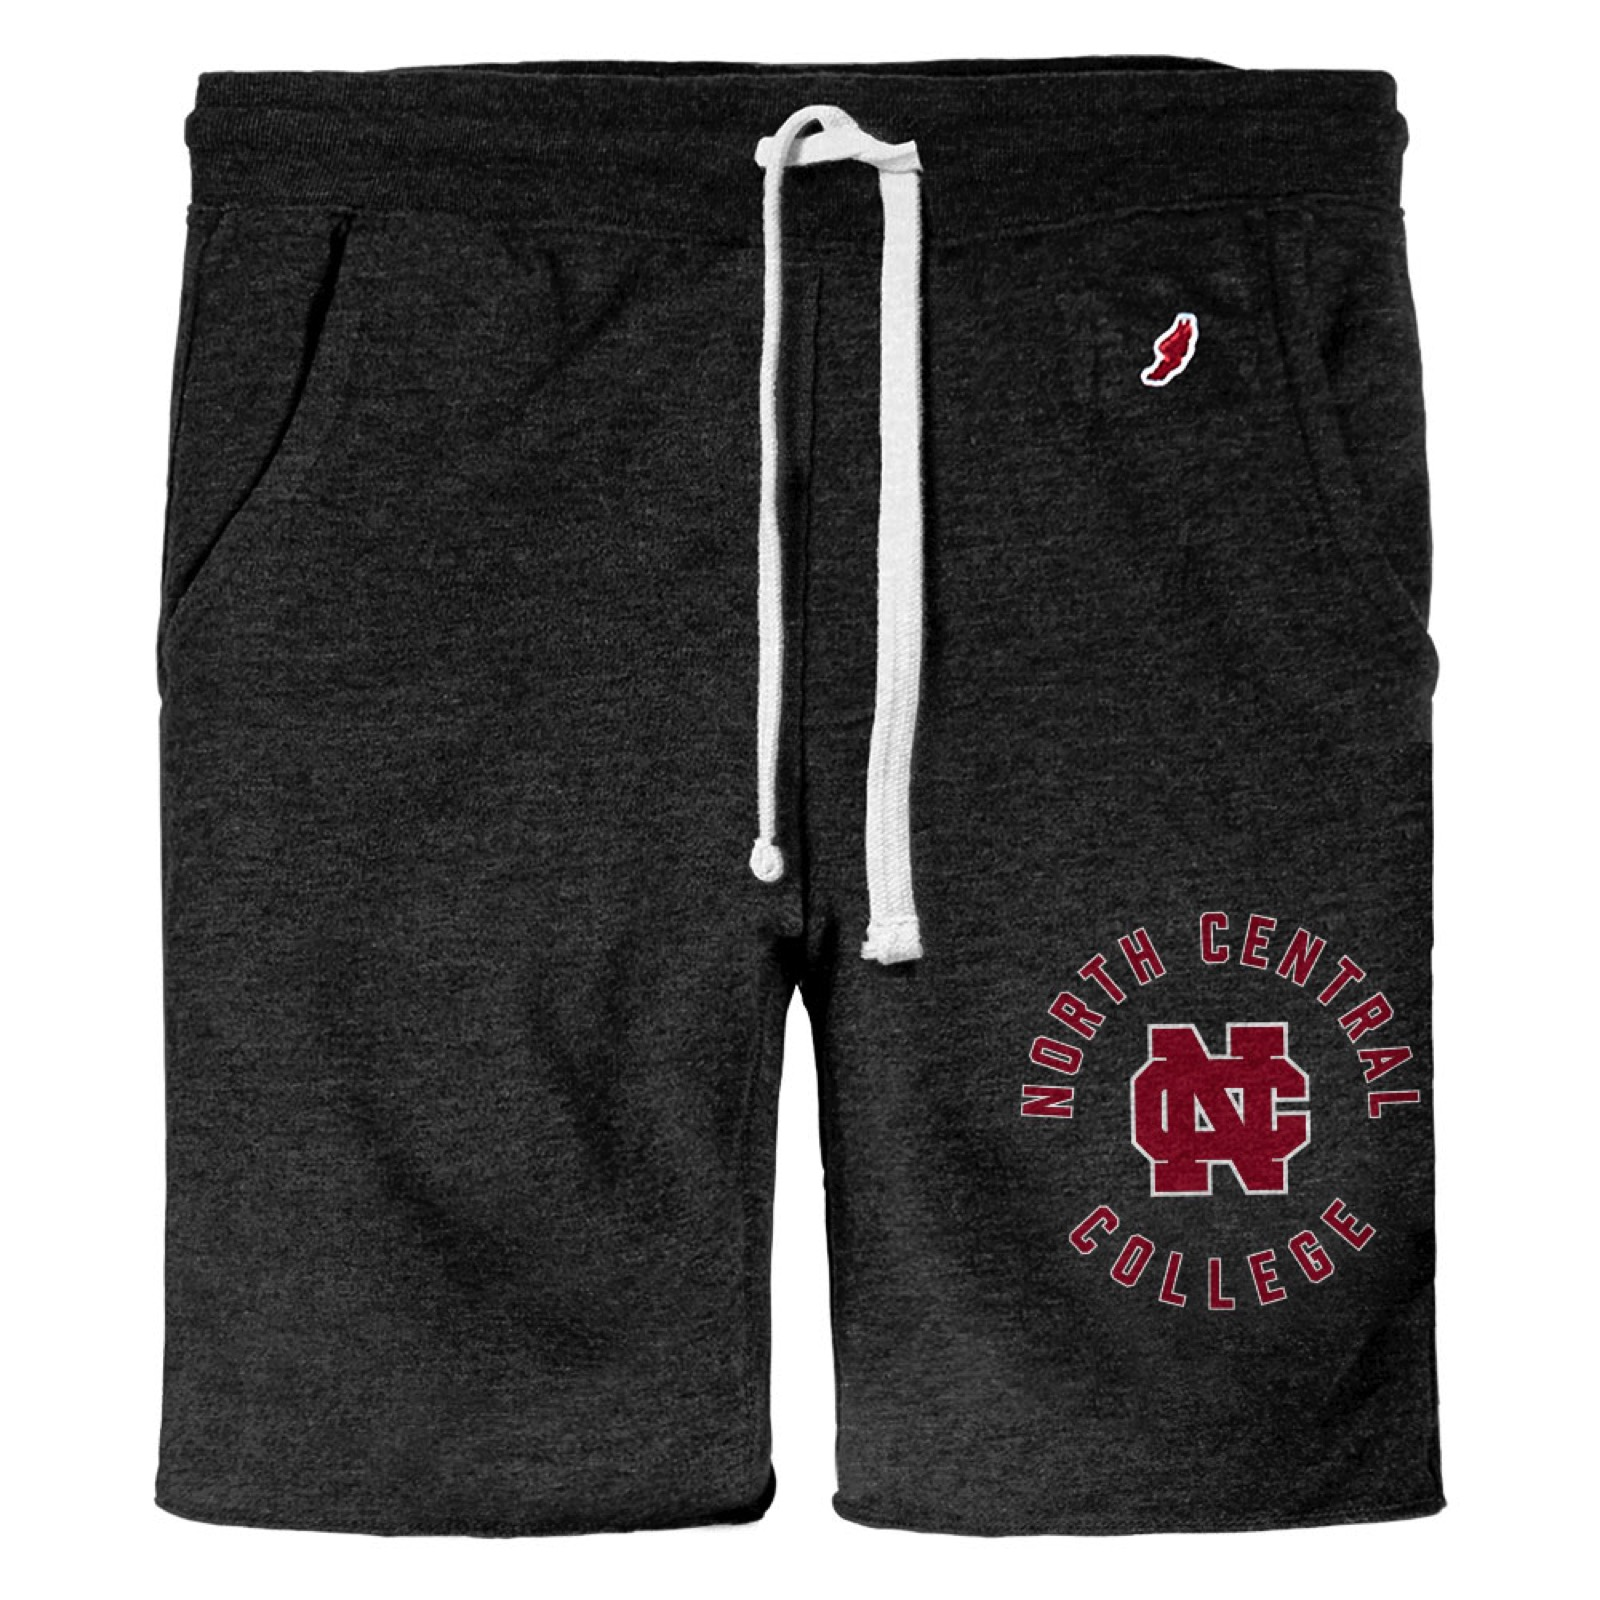 Image for the Jogger Shorts product